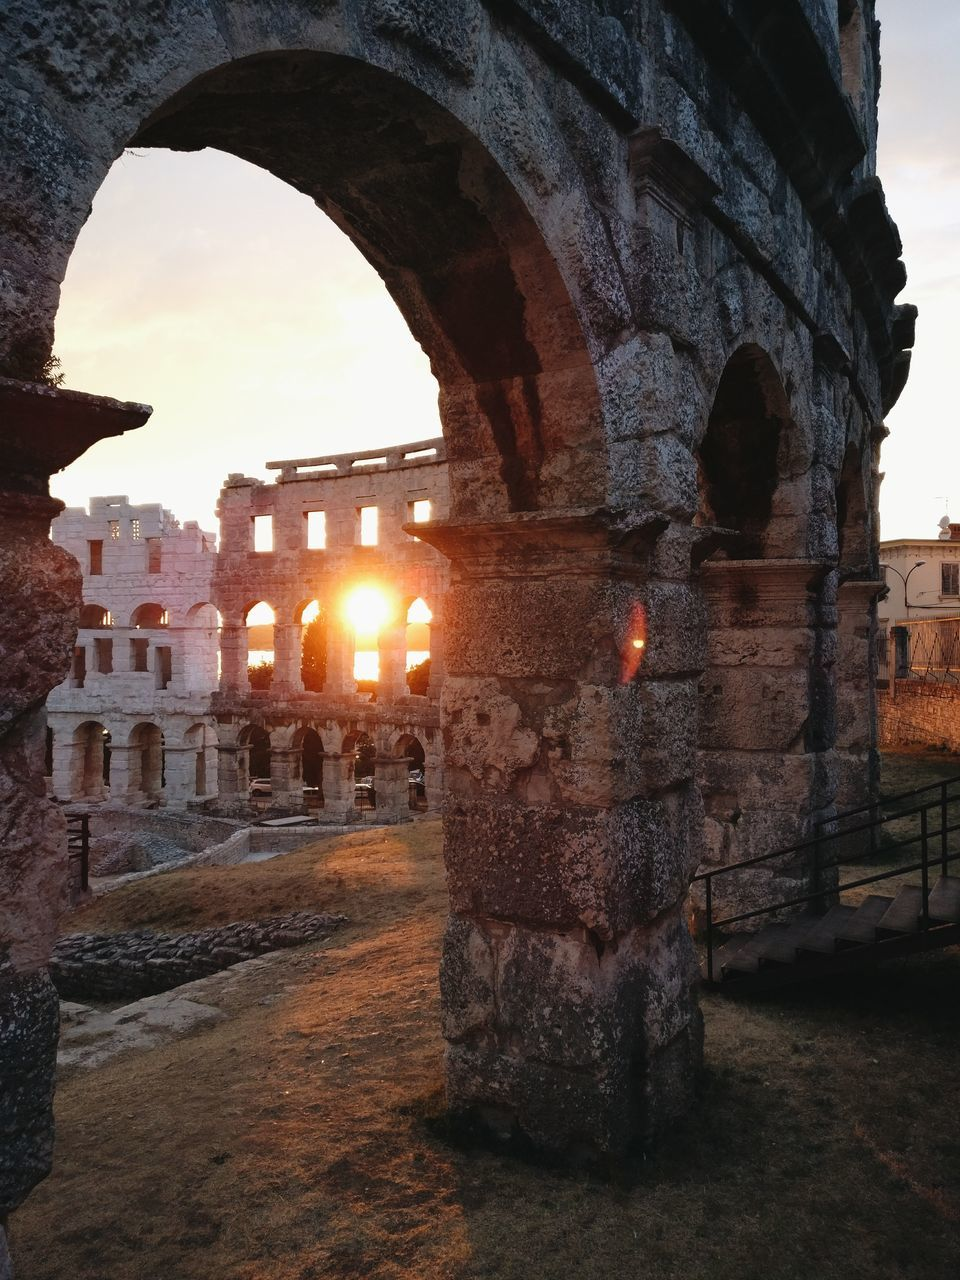 arch, built structure, architecture, history, ancient, old ruin, flame, sunset, no people, indoors, travel destinations, building exterior, illuminated, sky, day, ancient civilization